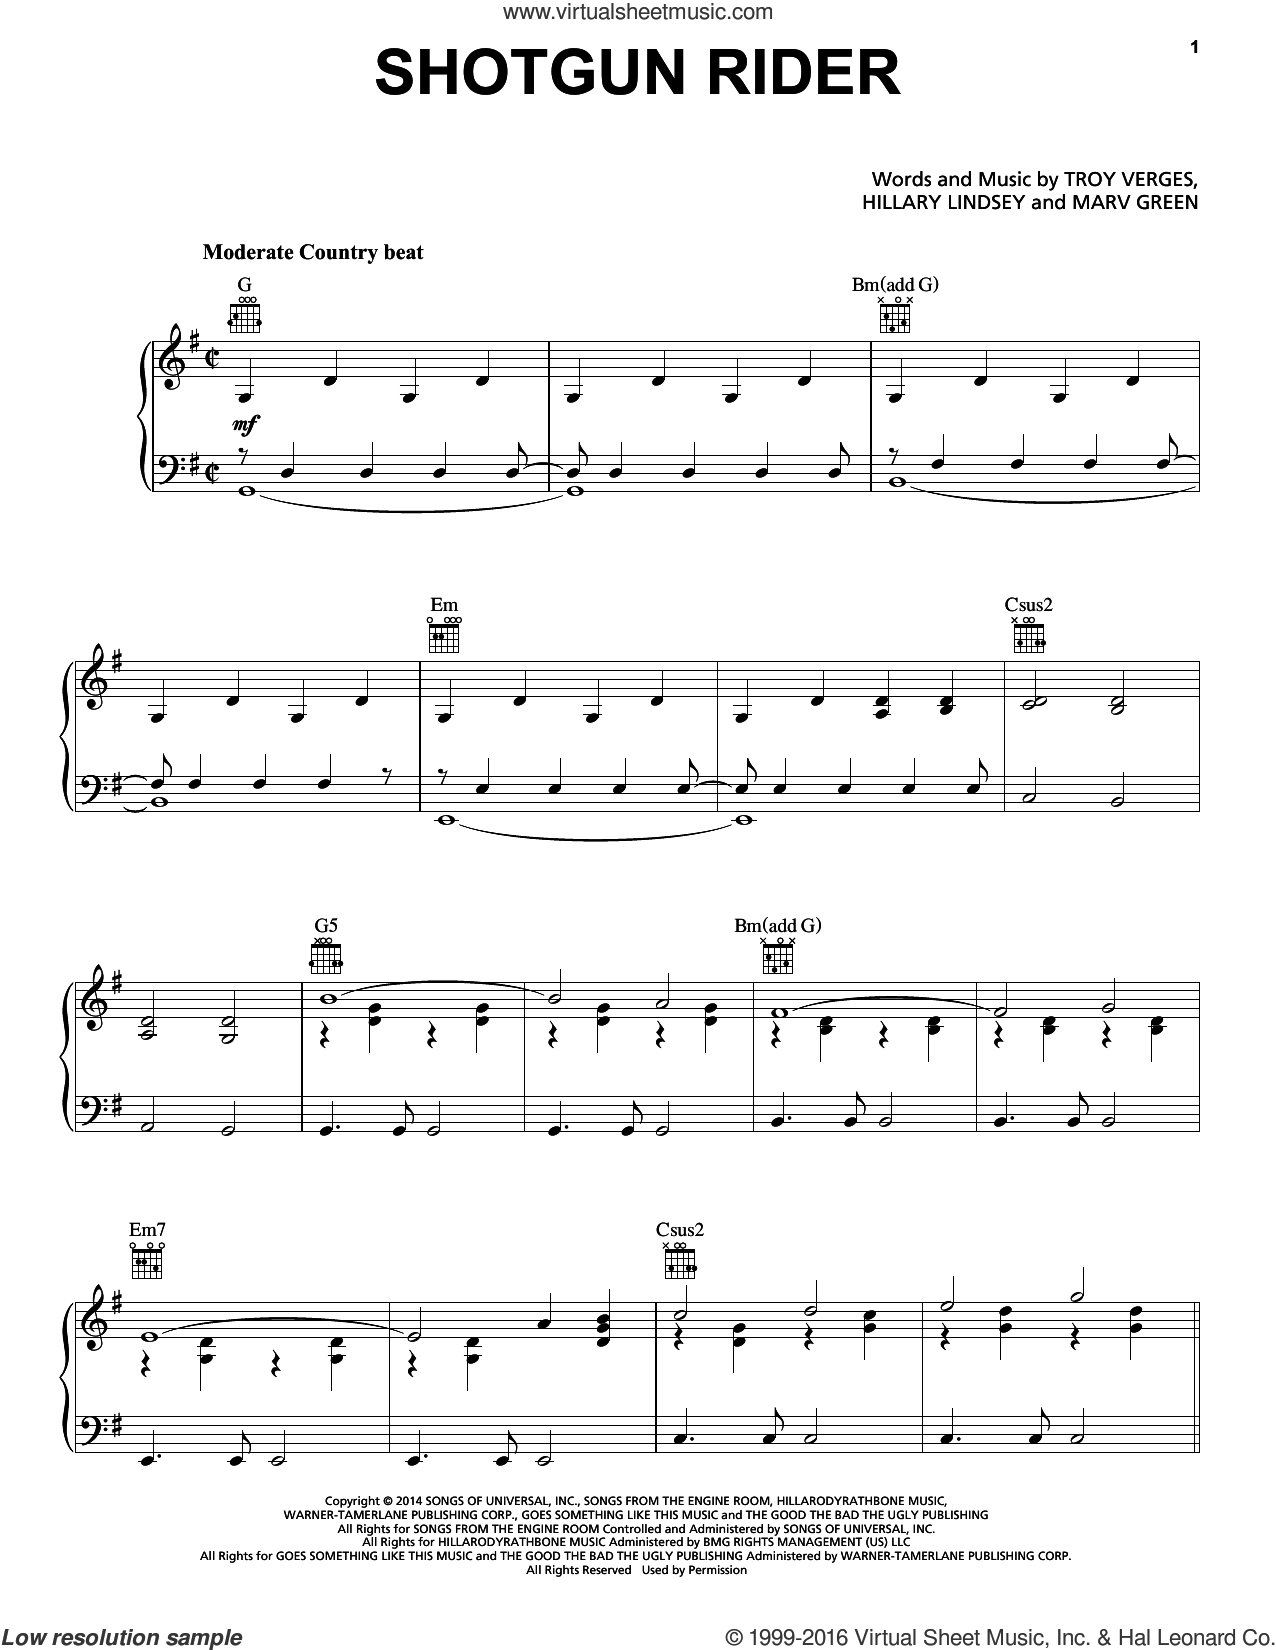 Shotgun Rider sheet music for voice, piano or guitar by Tim McGraw, Hillary Lindsey, Marv Green and Troy Verges, intermediate skill level